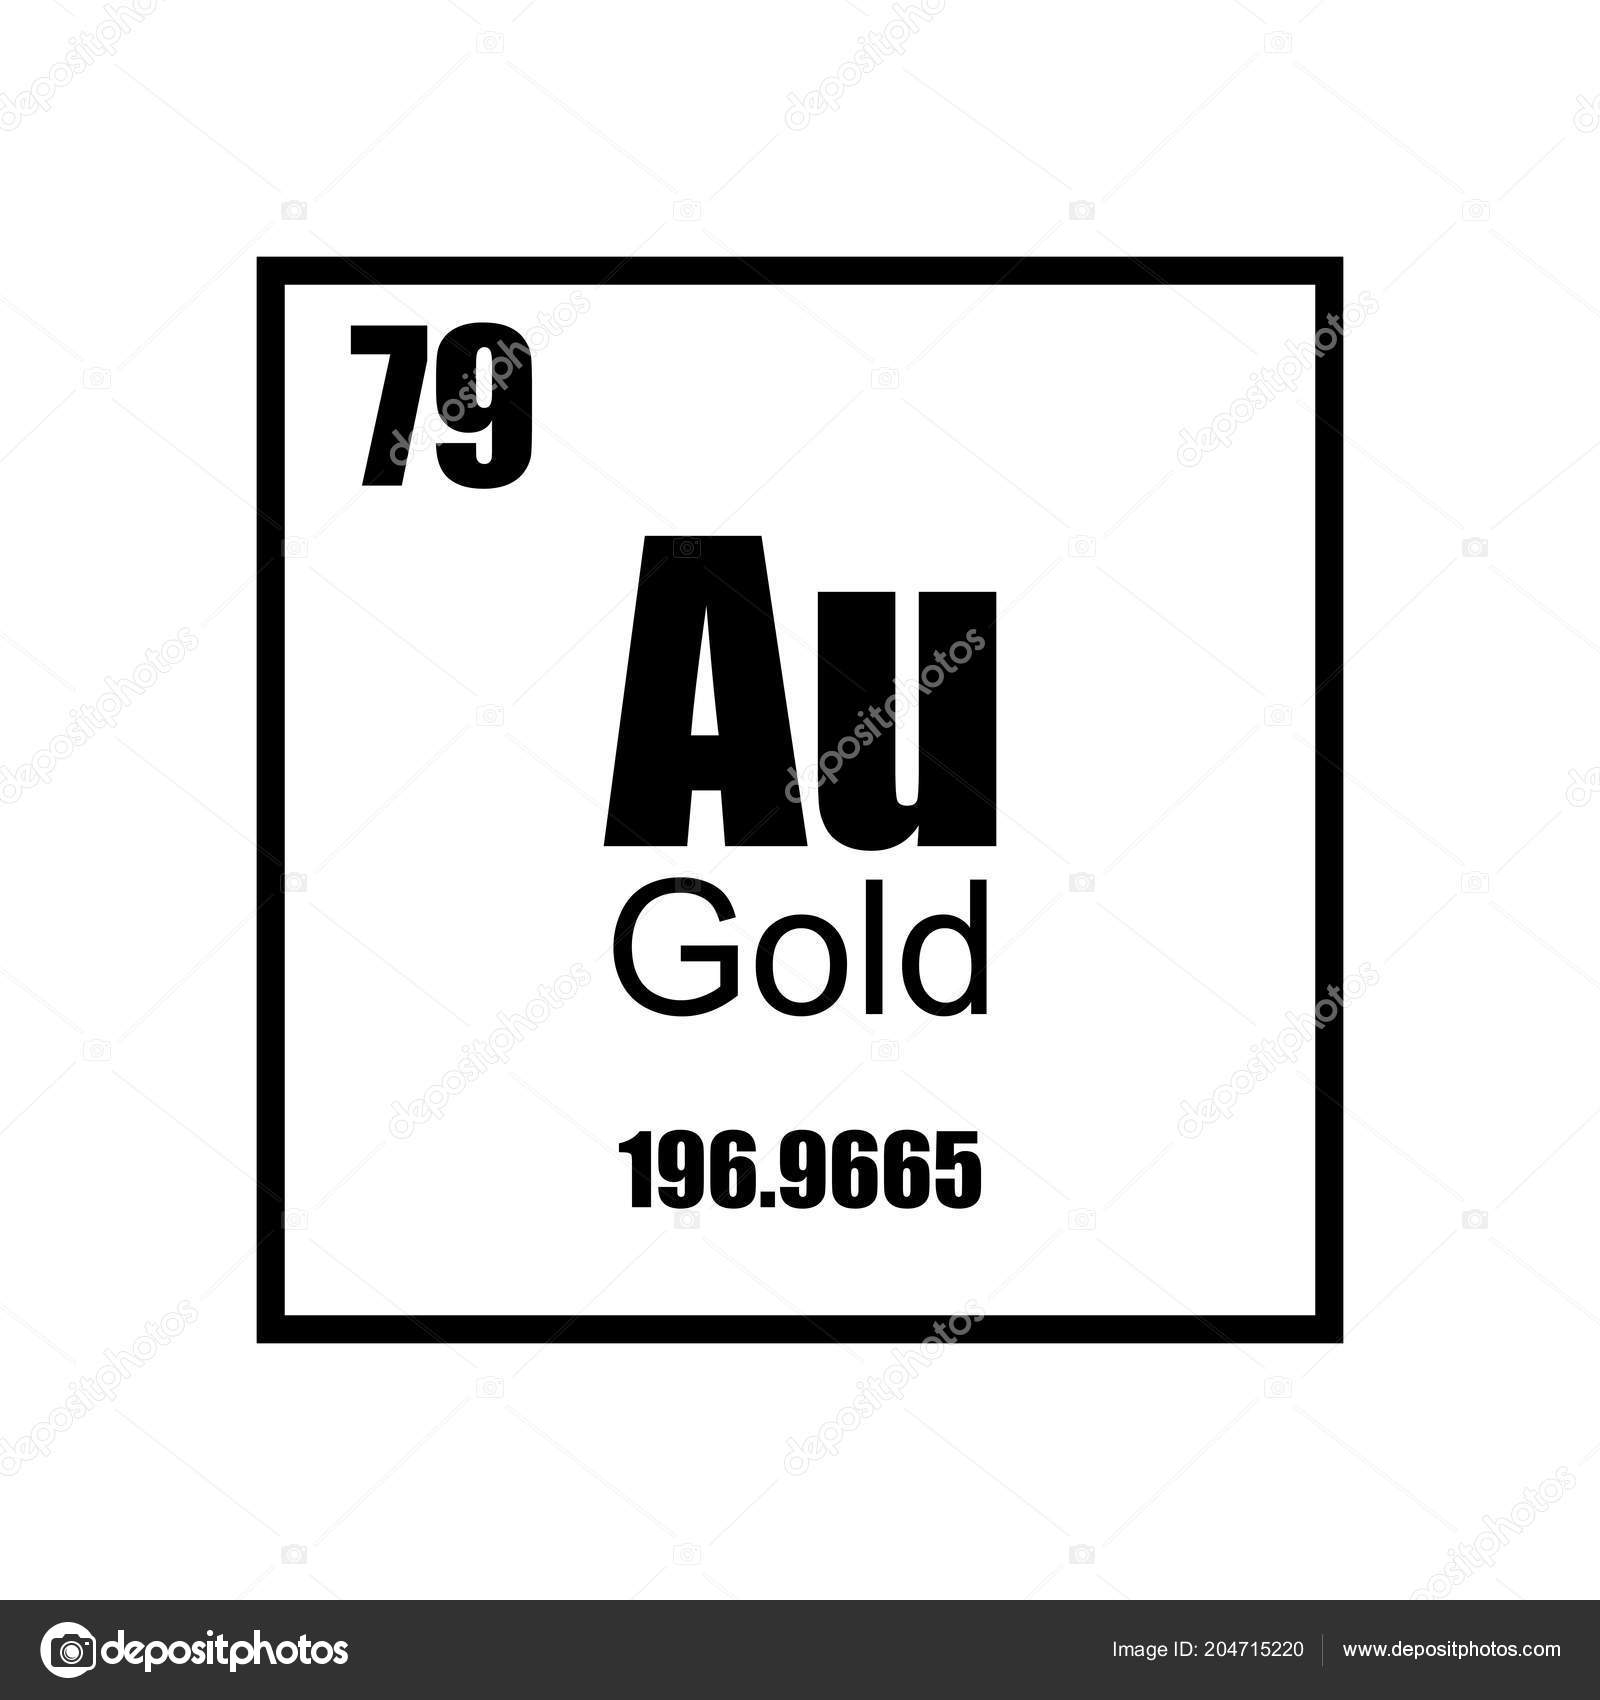 Gold element periodic table stock vector mgonchar 204715220 gold element periodic table black on white background number atomic weight square frame atom chemistry molecula mark stamp label urtaz Images